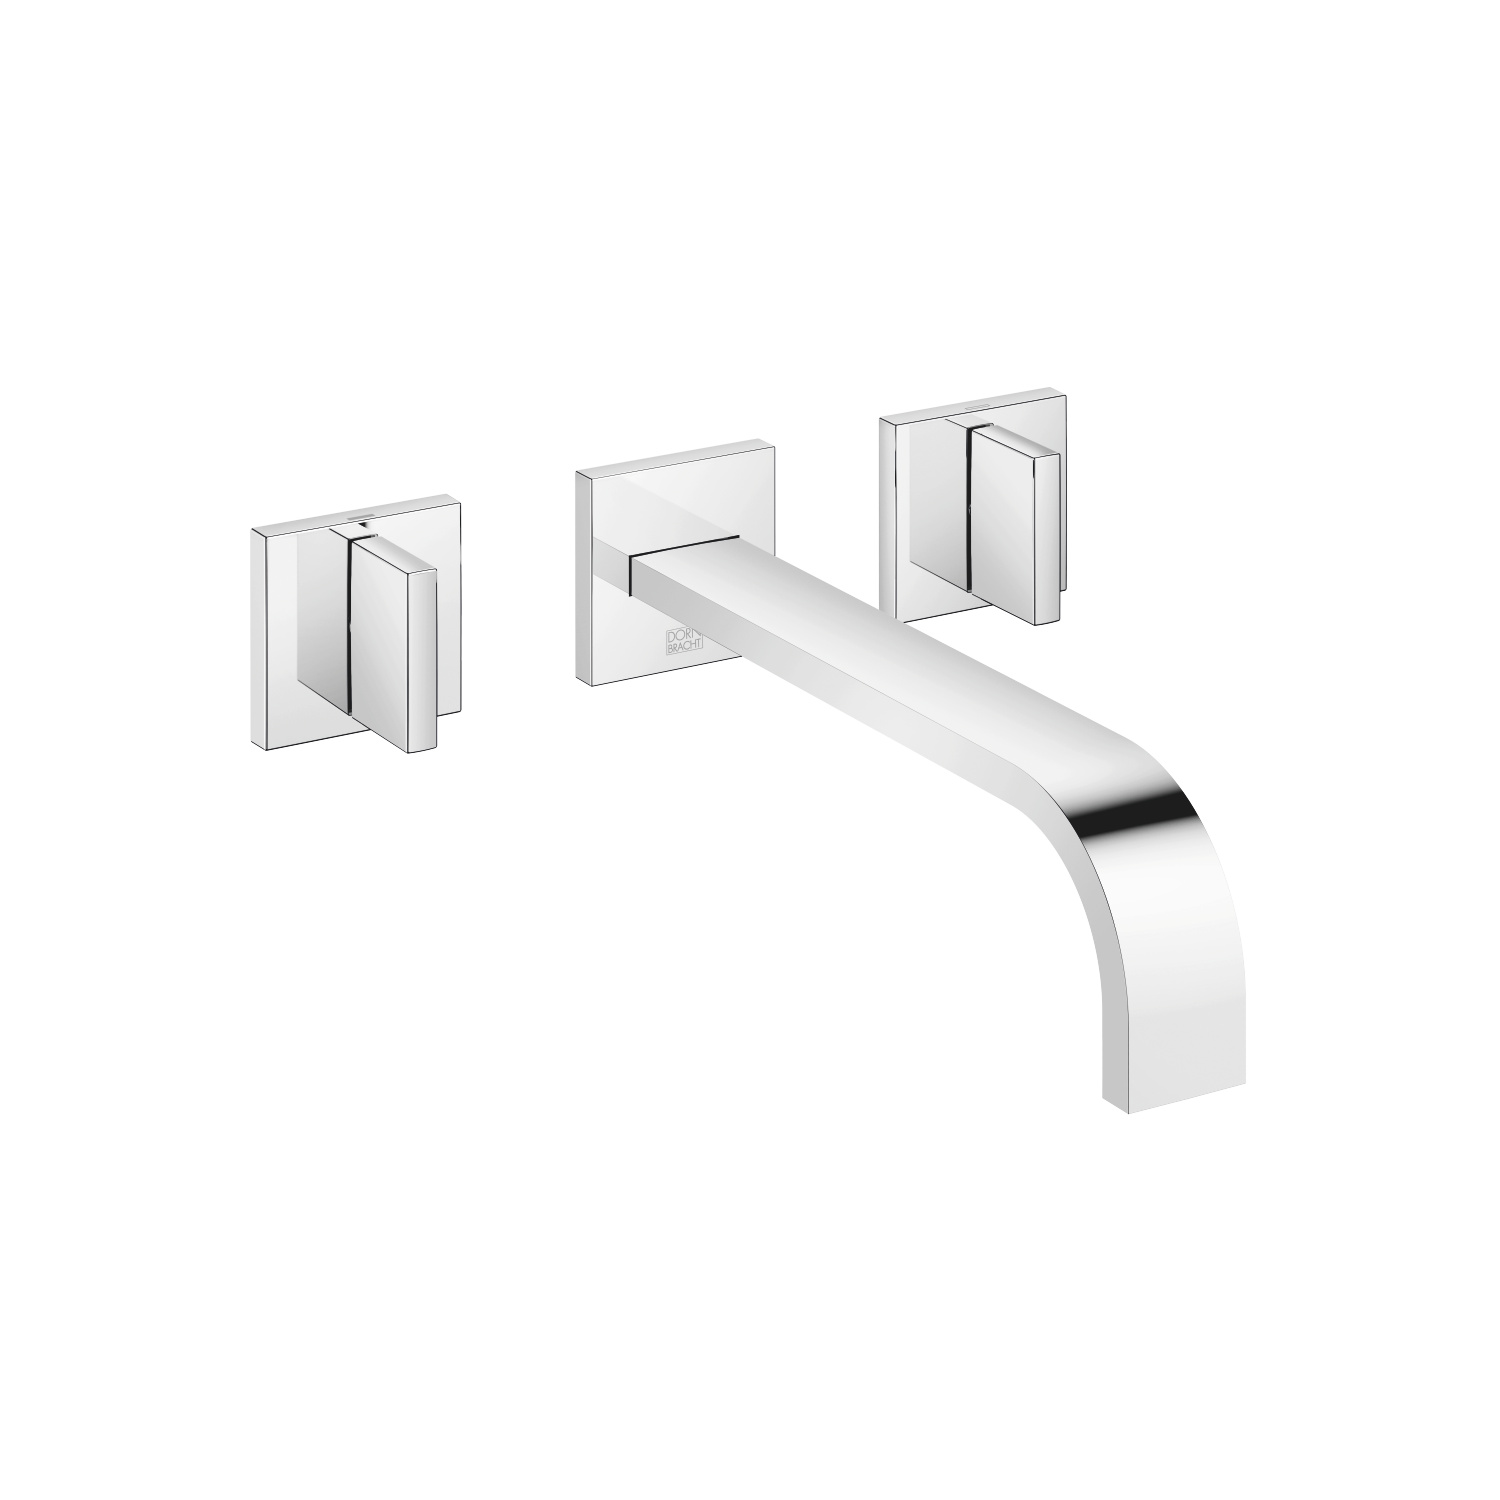 Wall-mounted three-hole lavatory mixer without drain - polished chrome